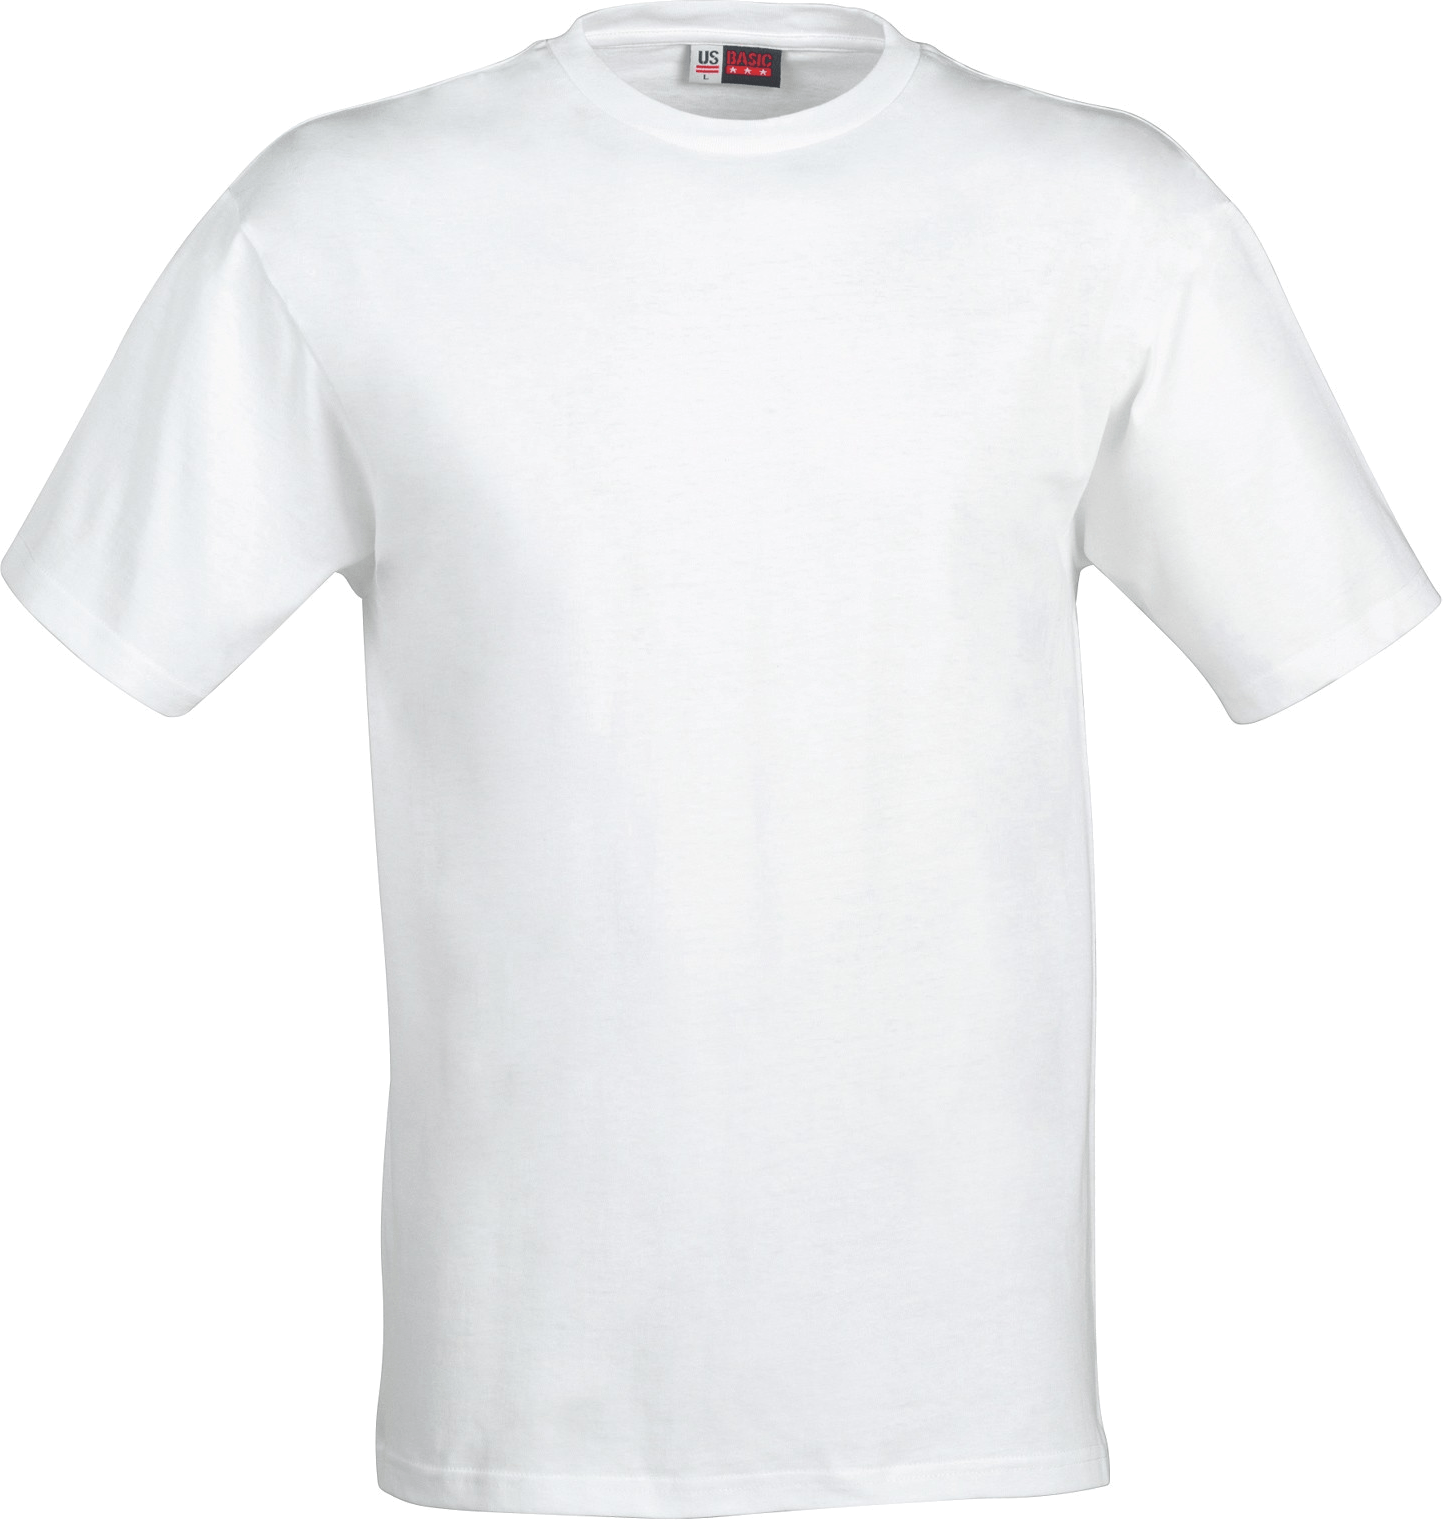 white t shirt front and back png wwwpixsharkcom